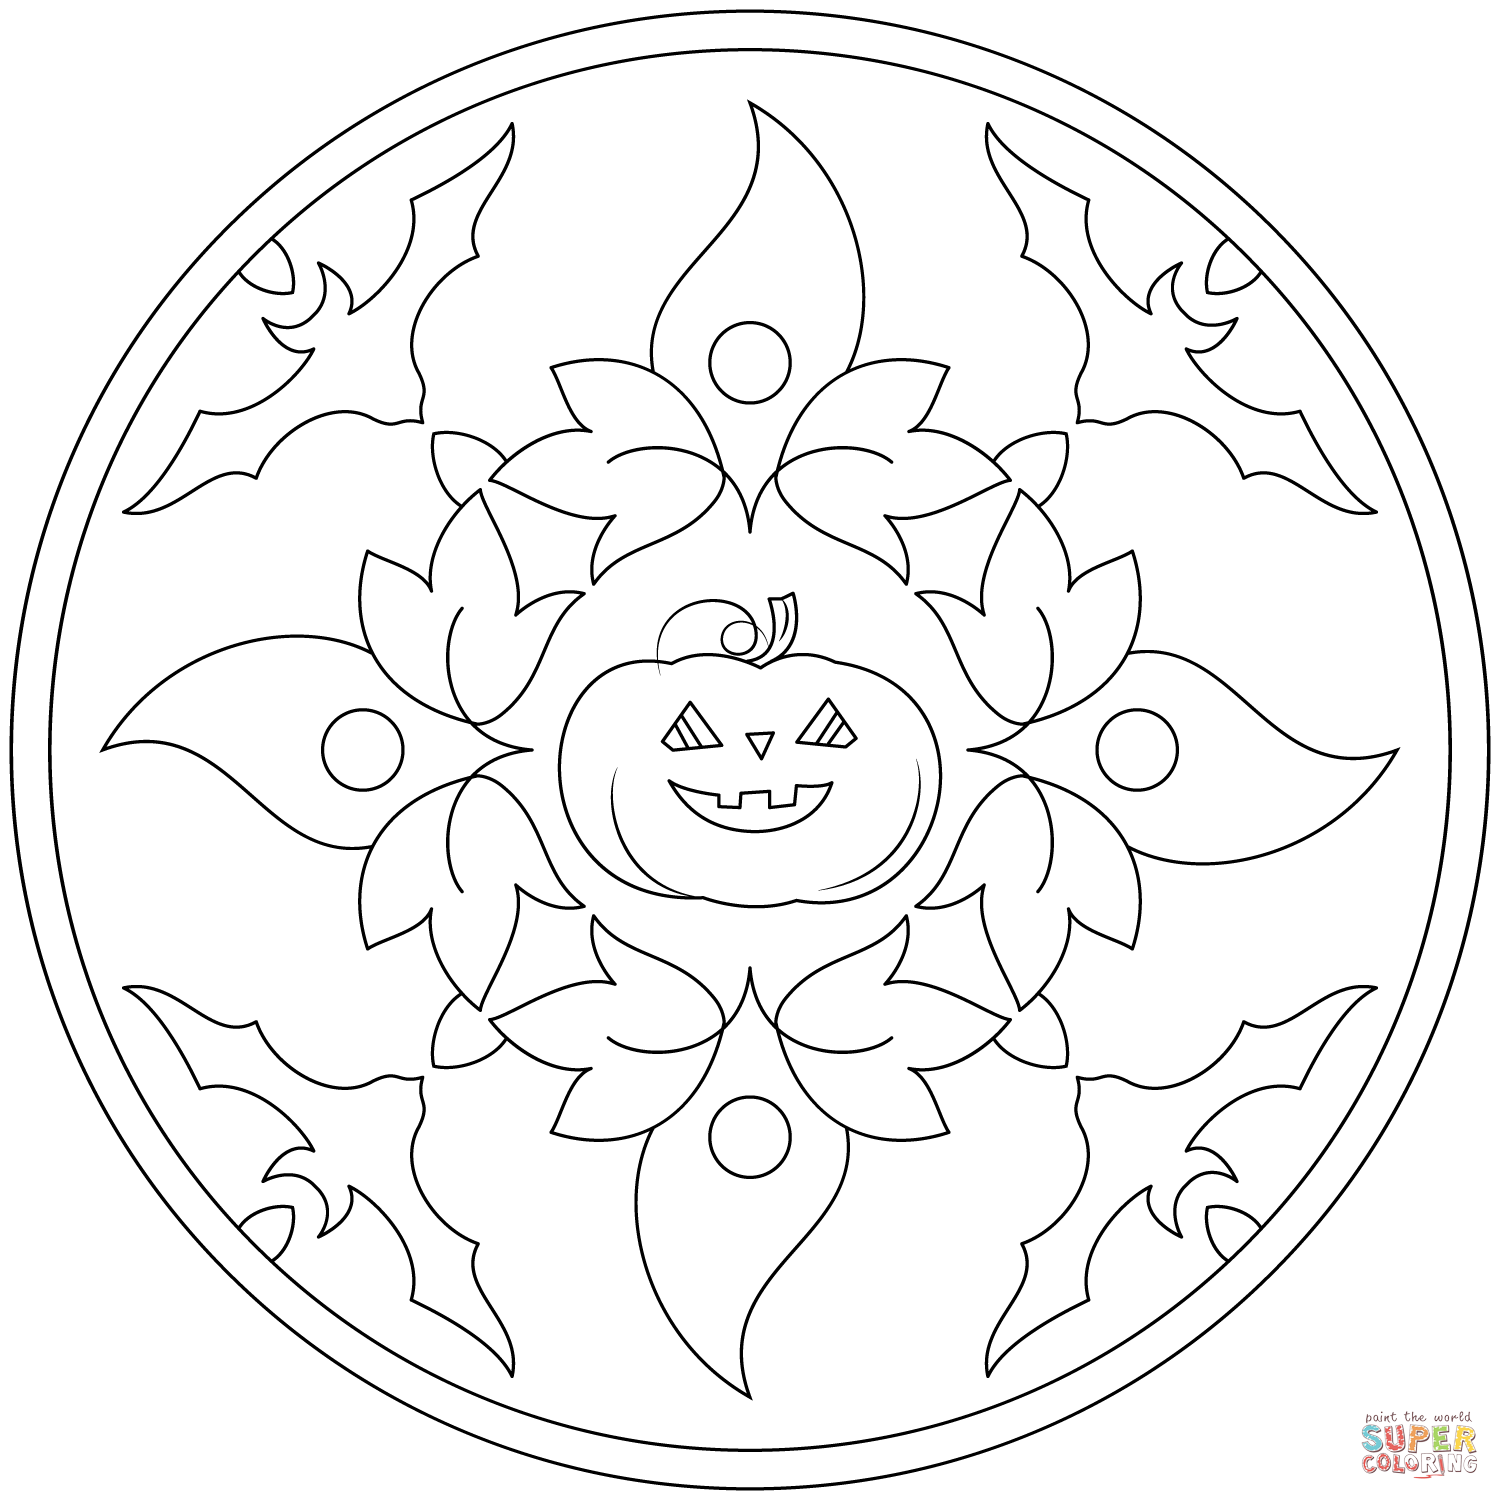 mandala halloween coloring pages halloweens mandalas drawing 1 funnycrafts halloween mandala